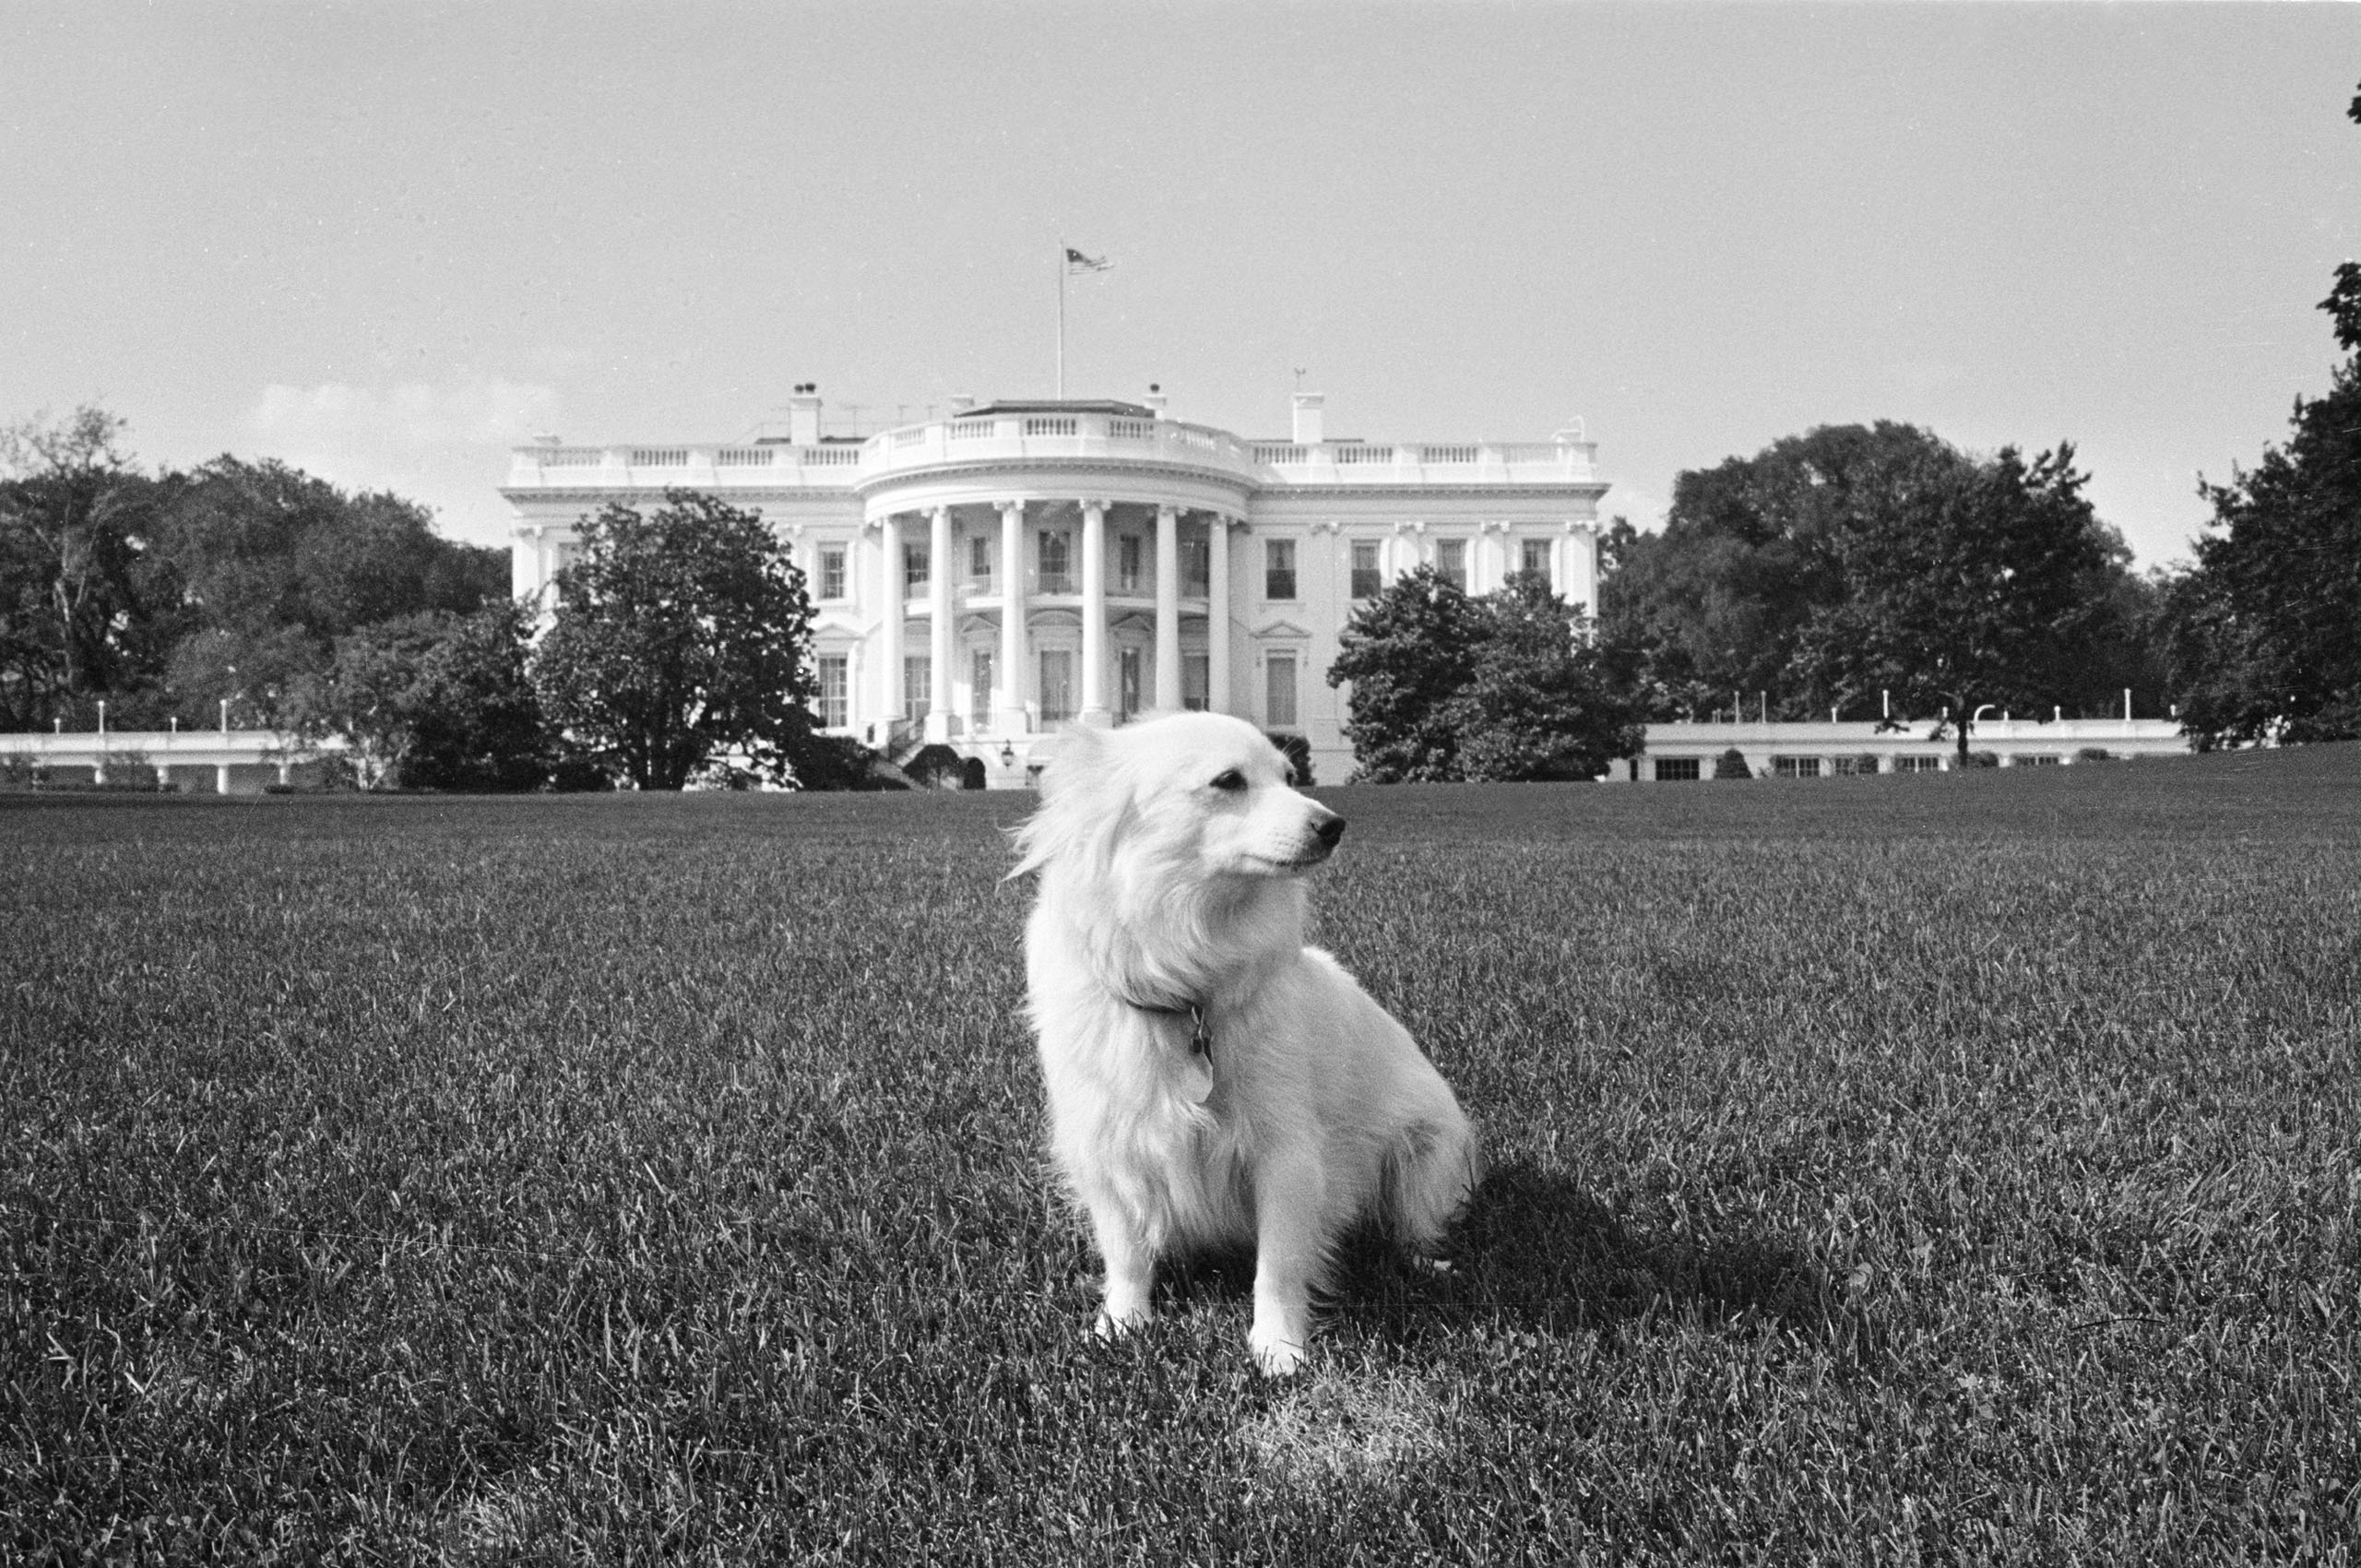 Pushinka, a gift to Presdient John F. Kennedy from Soviet Premier Nikita Khrushchev, stands on the White House lawn, Aug. 14, 1963, while the rest of the family's dogs vacation with the first family at Cape Cod. Pushinka is the offspring of Soviet space dog Stelka.